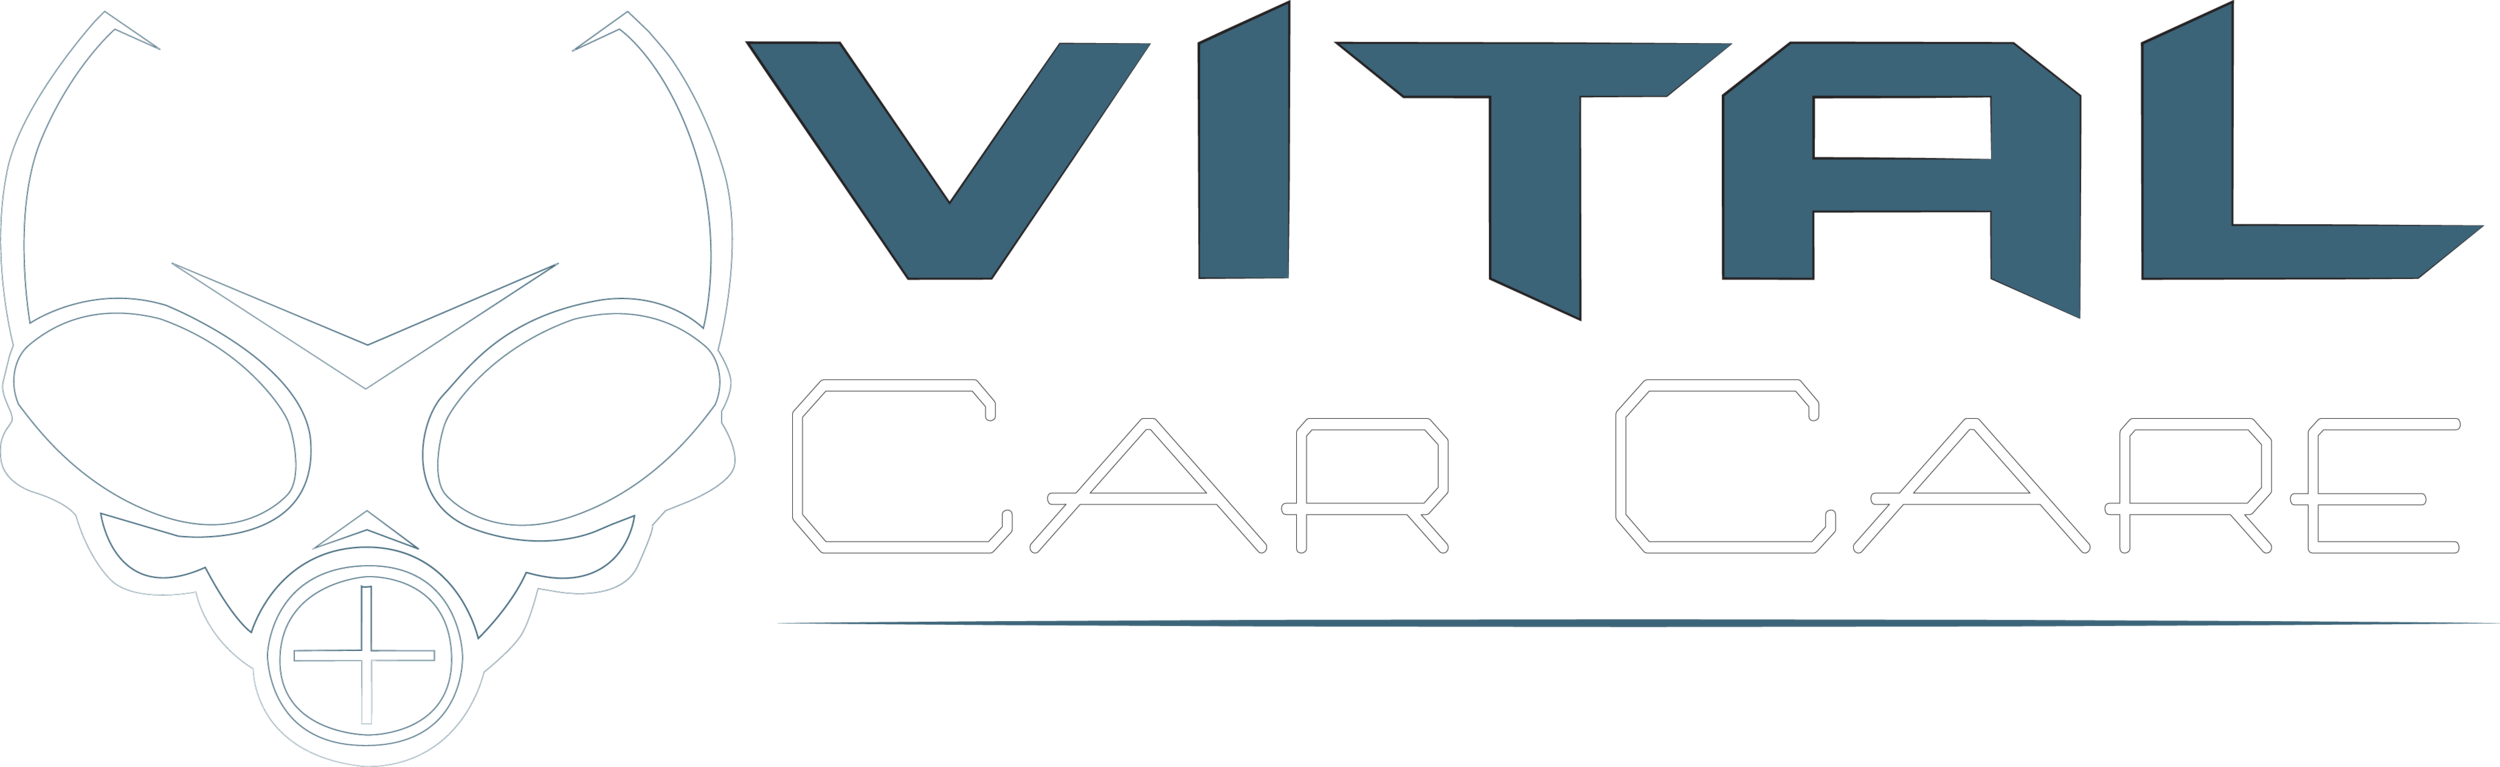 Vital Car Care restores and protects your automotive finish.